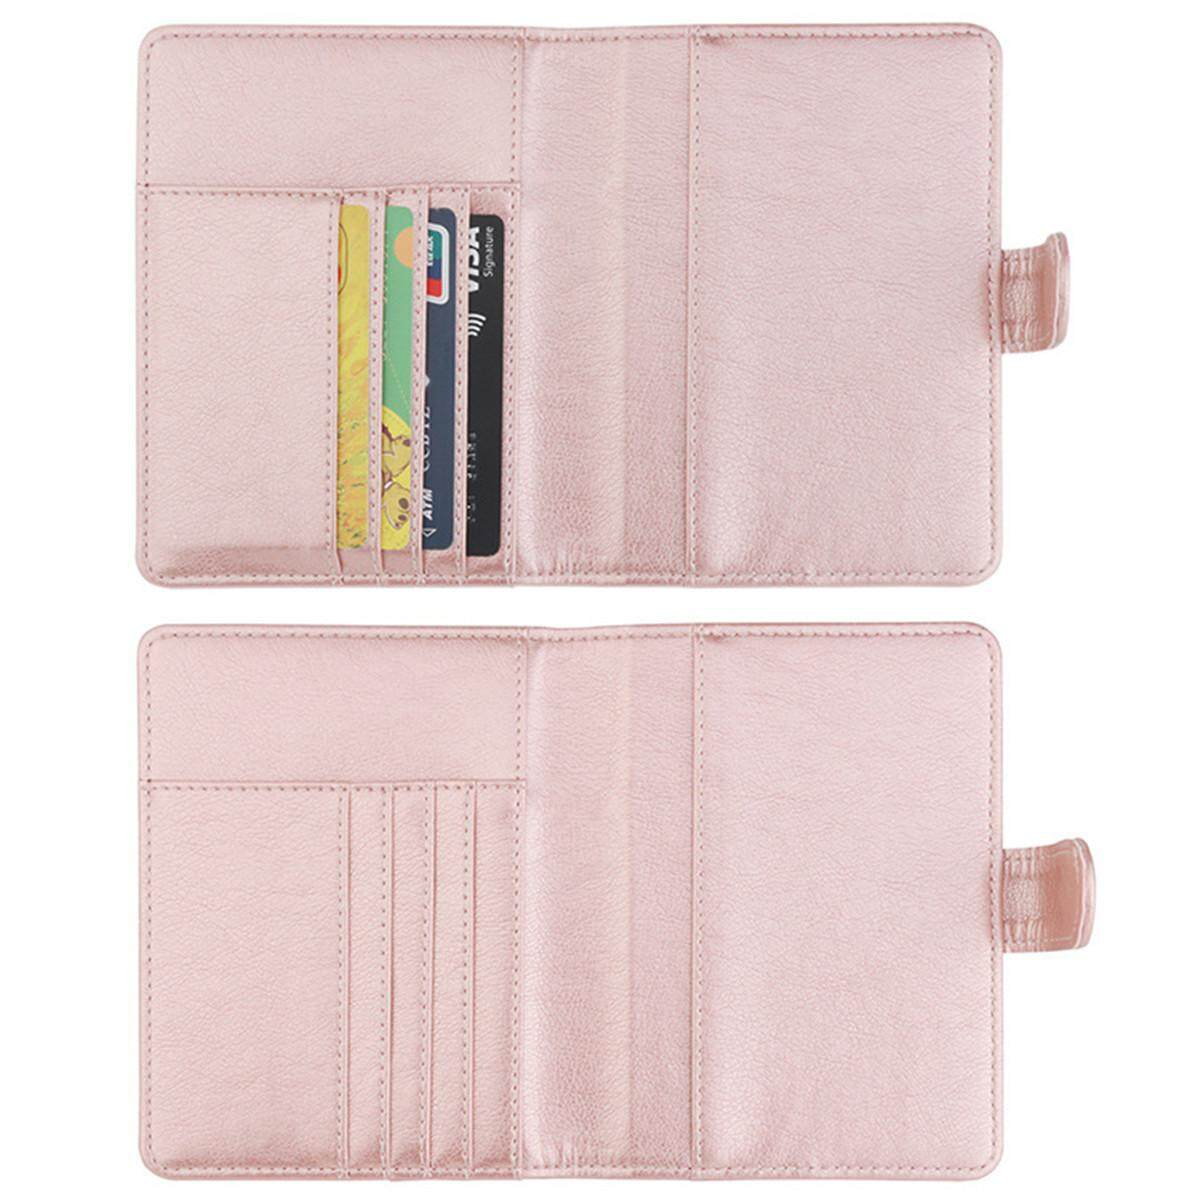 ... Passport Holder Wallet Cover Case RFID Blocking Travel Wallet #Rose Gold - intl - 4